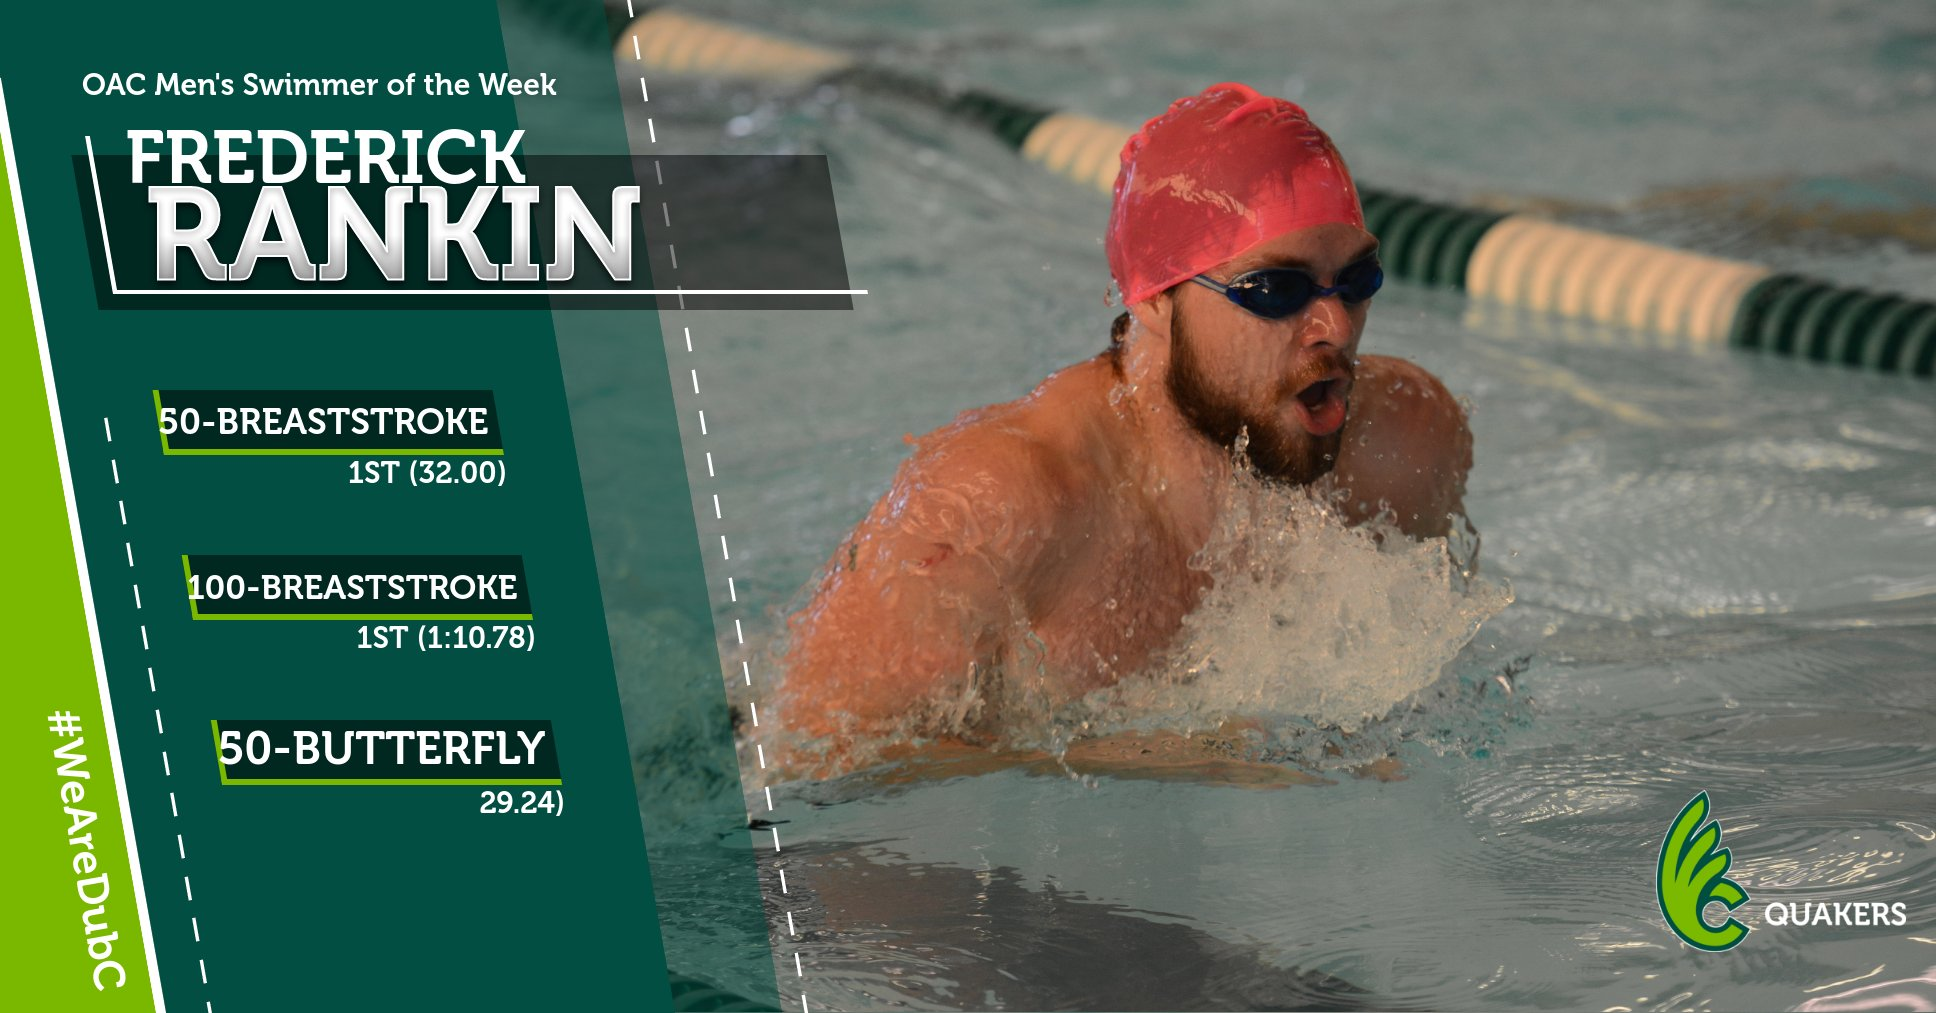 Frederick Rankin Named OAC Men's Swimmer of the Week